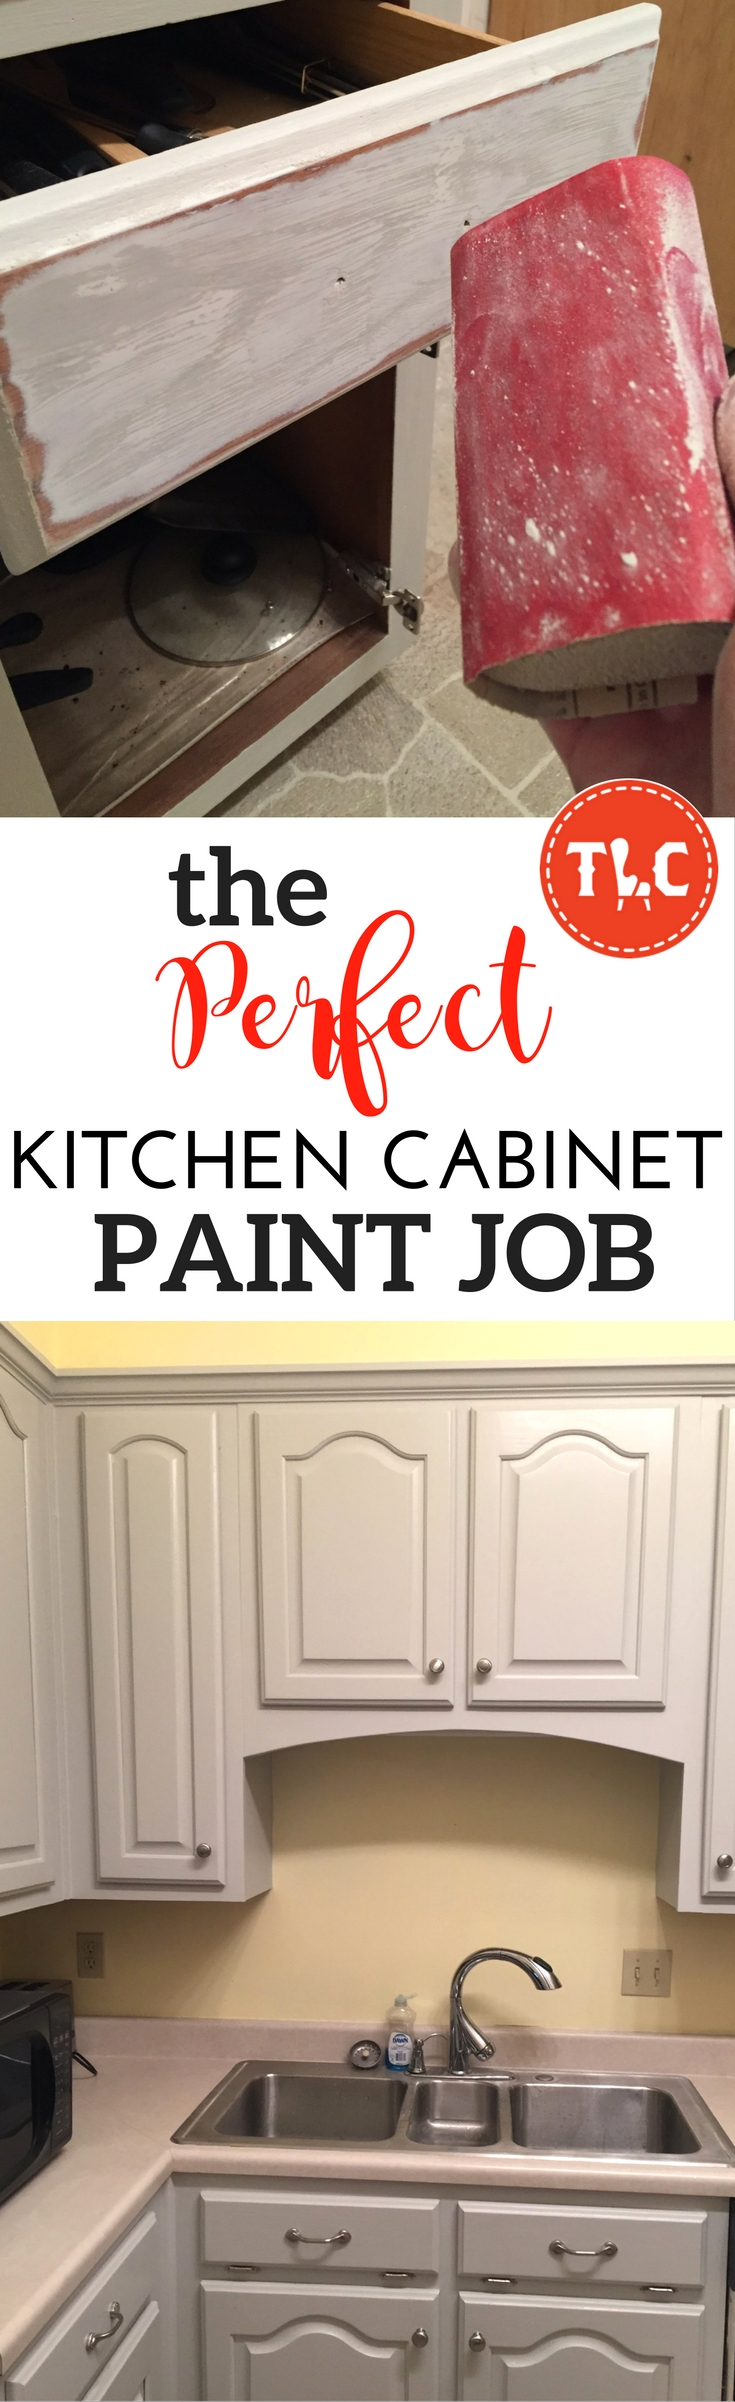 Hugedomains Com Shop For Over 300 000 Premium Domains Kids Furniture Makeover Painting Cabinets Painting Kitchen Cabinets